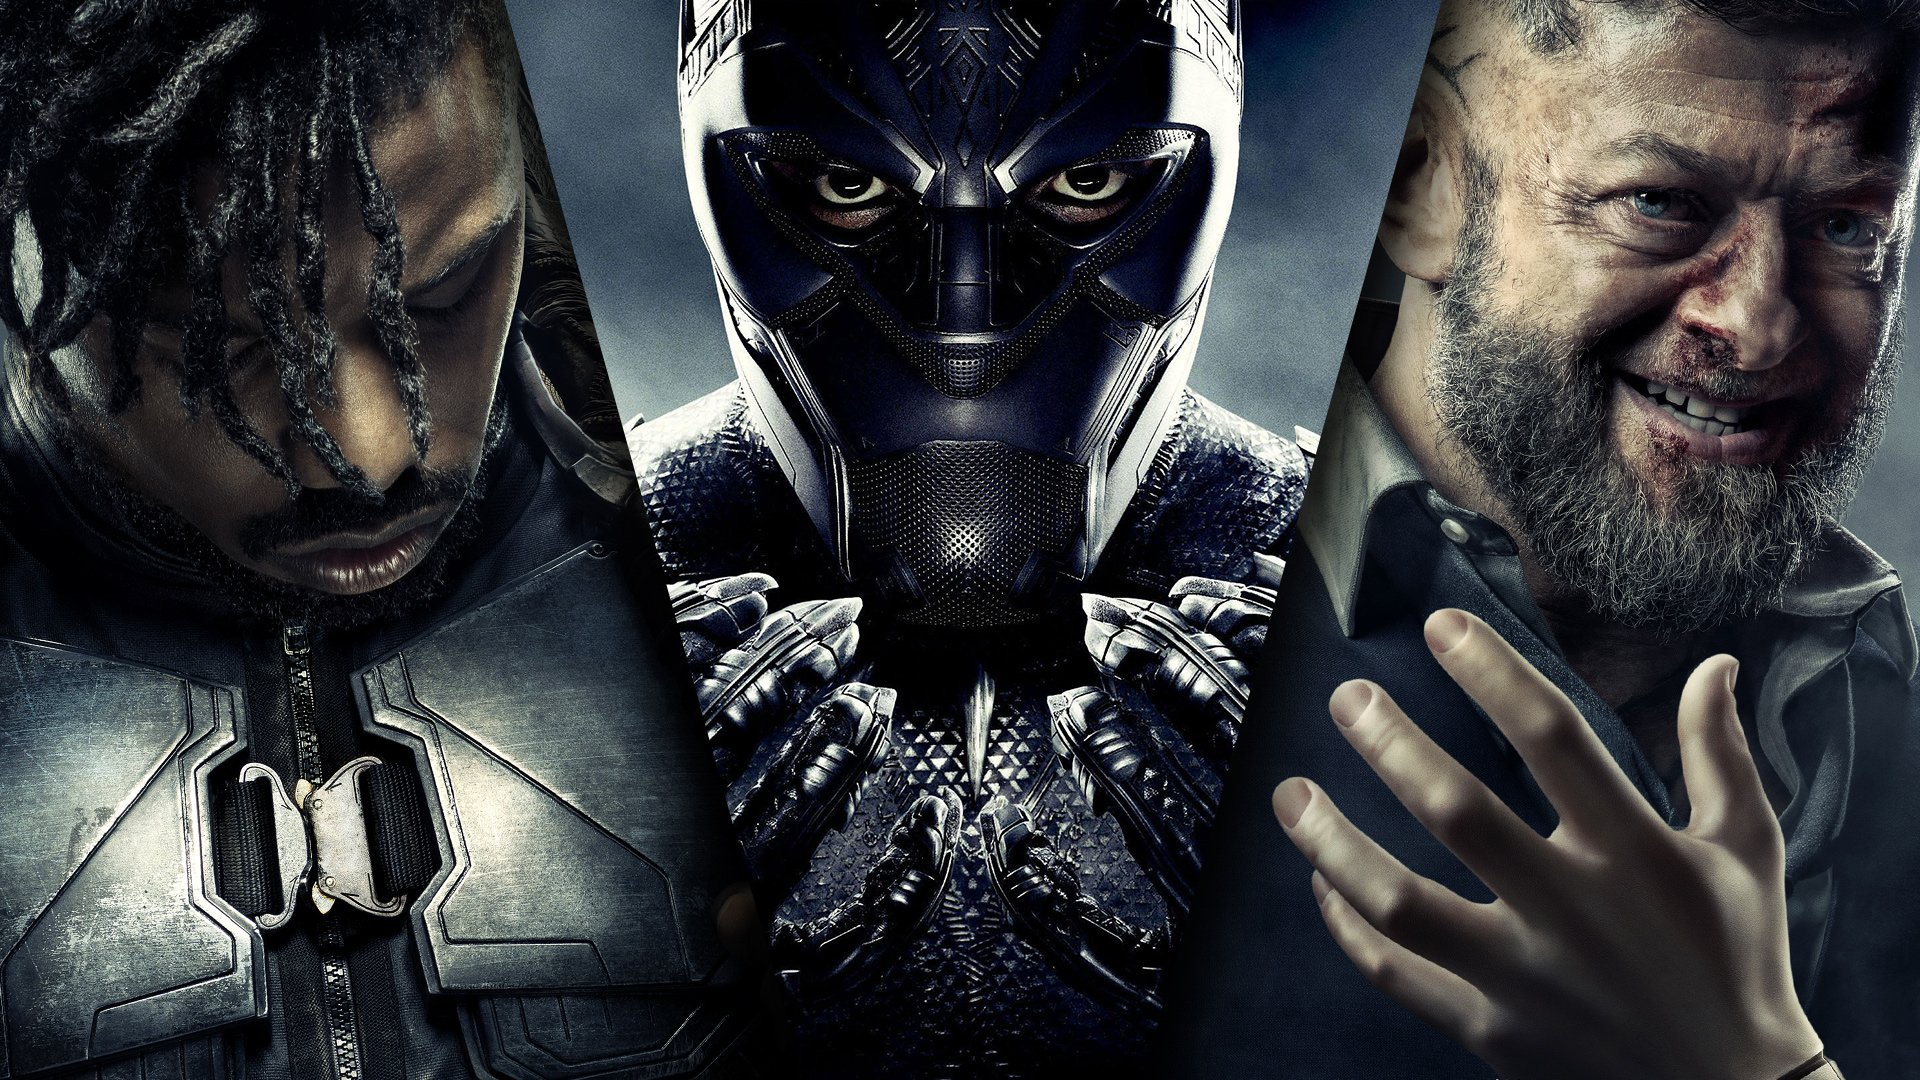 SPOILERS! Here are the eight biggest WTF questions we had after watching #BlackPanther ...  https://t.co/A0LA9WspZB https://t.co/a5nruRR88f